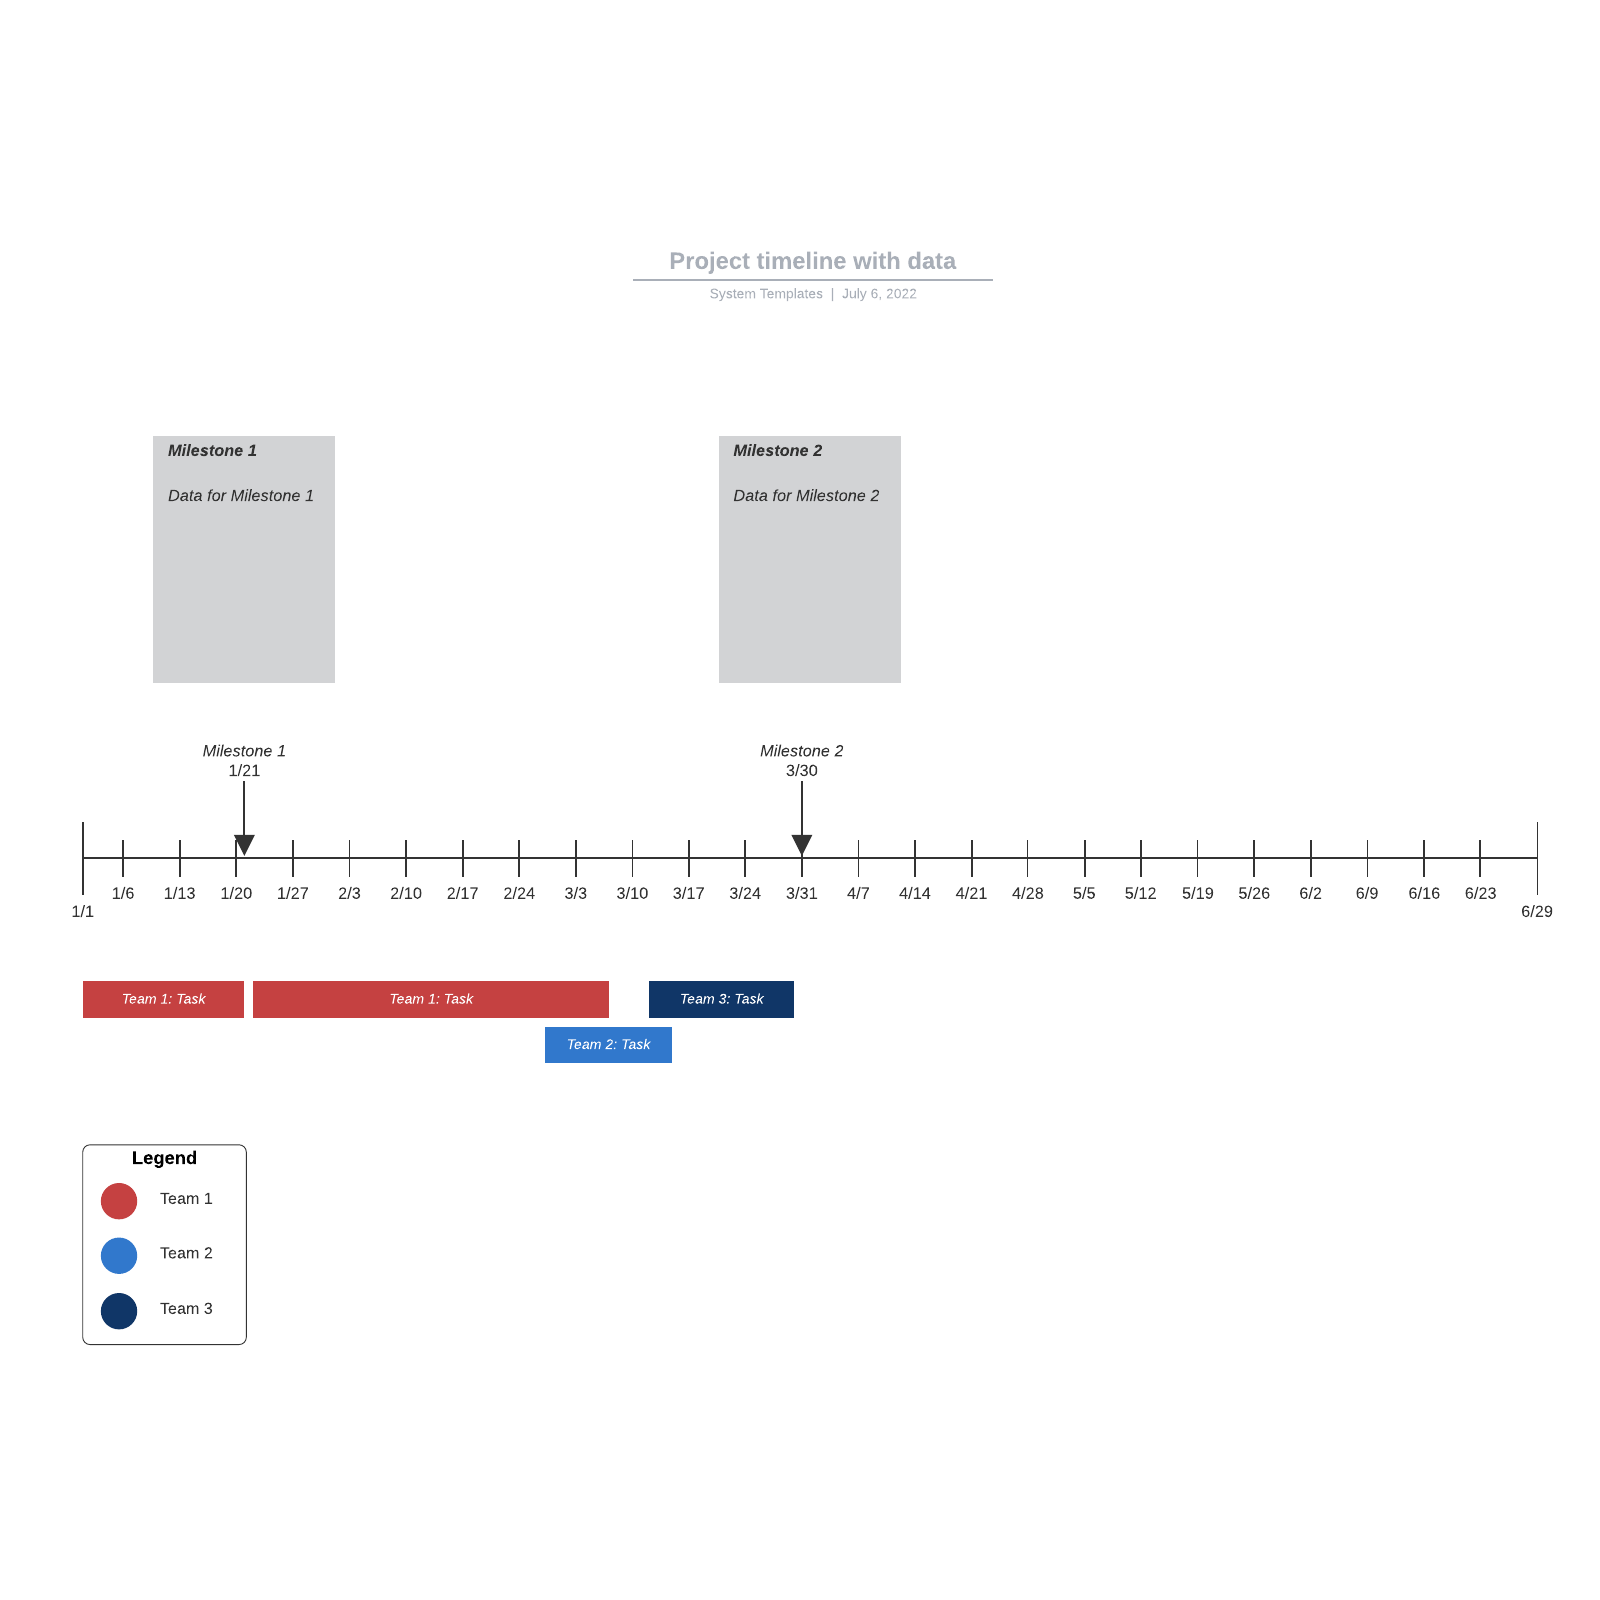 Project timeline with data